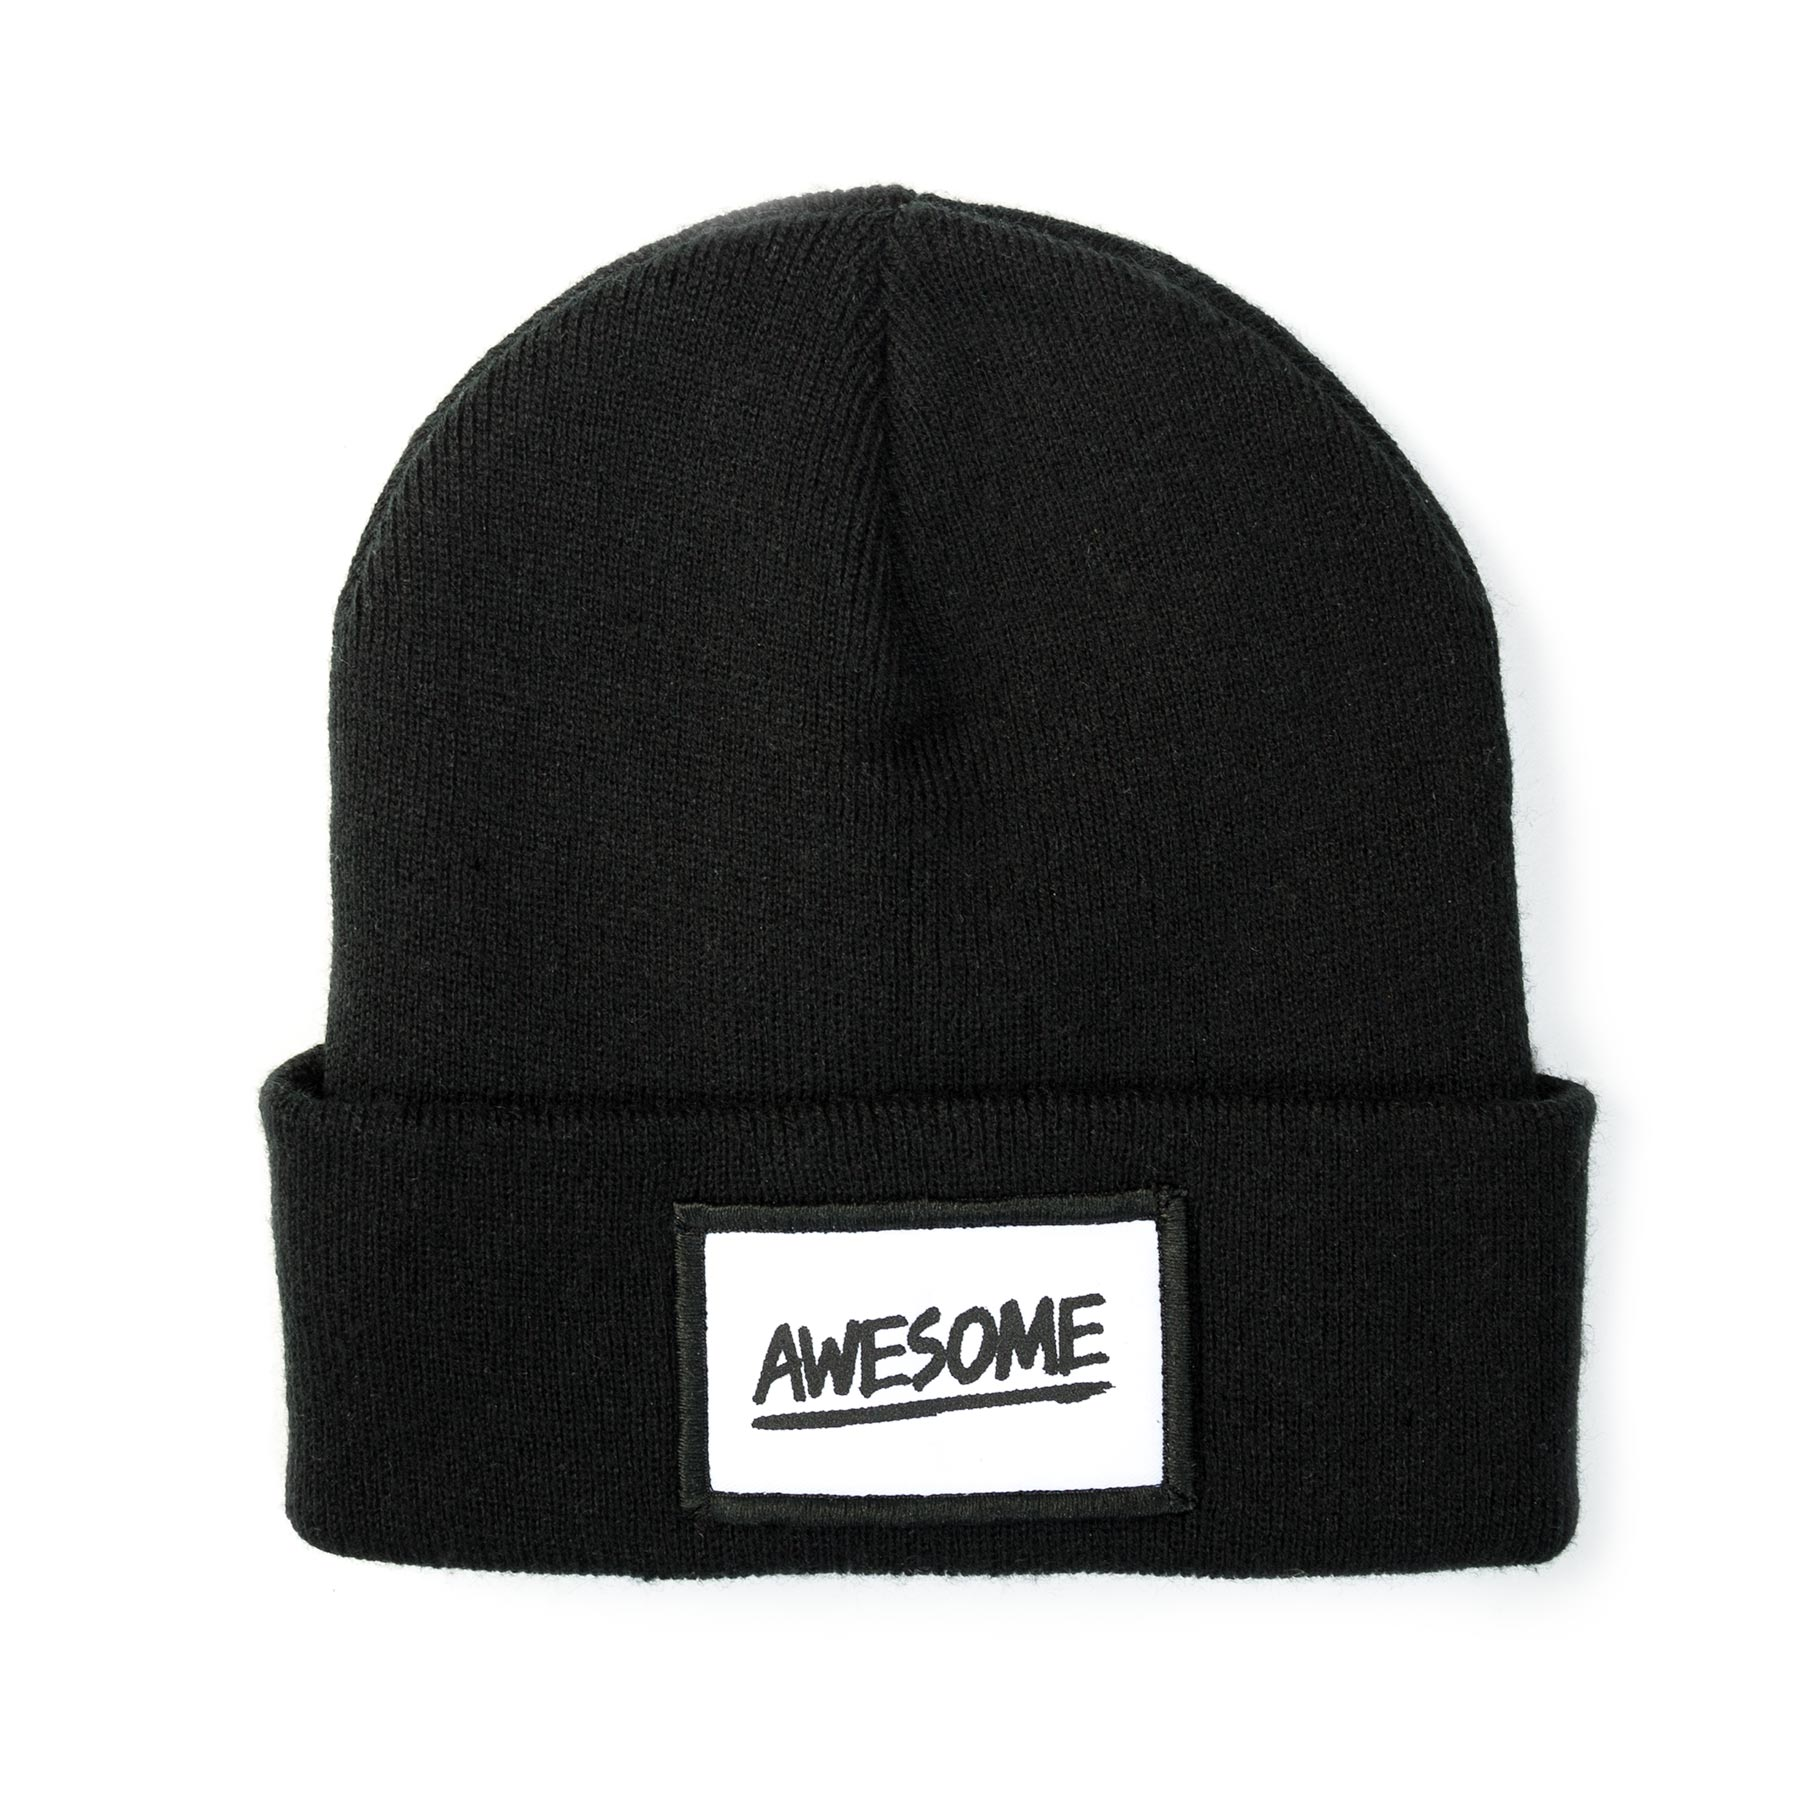 Screen Printed 5cm x 8cm Patch Beanies